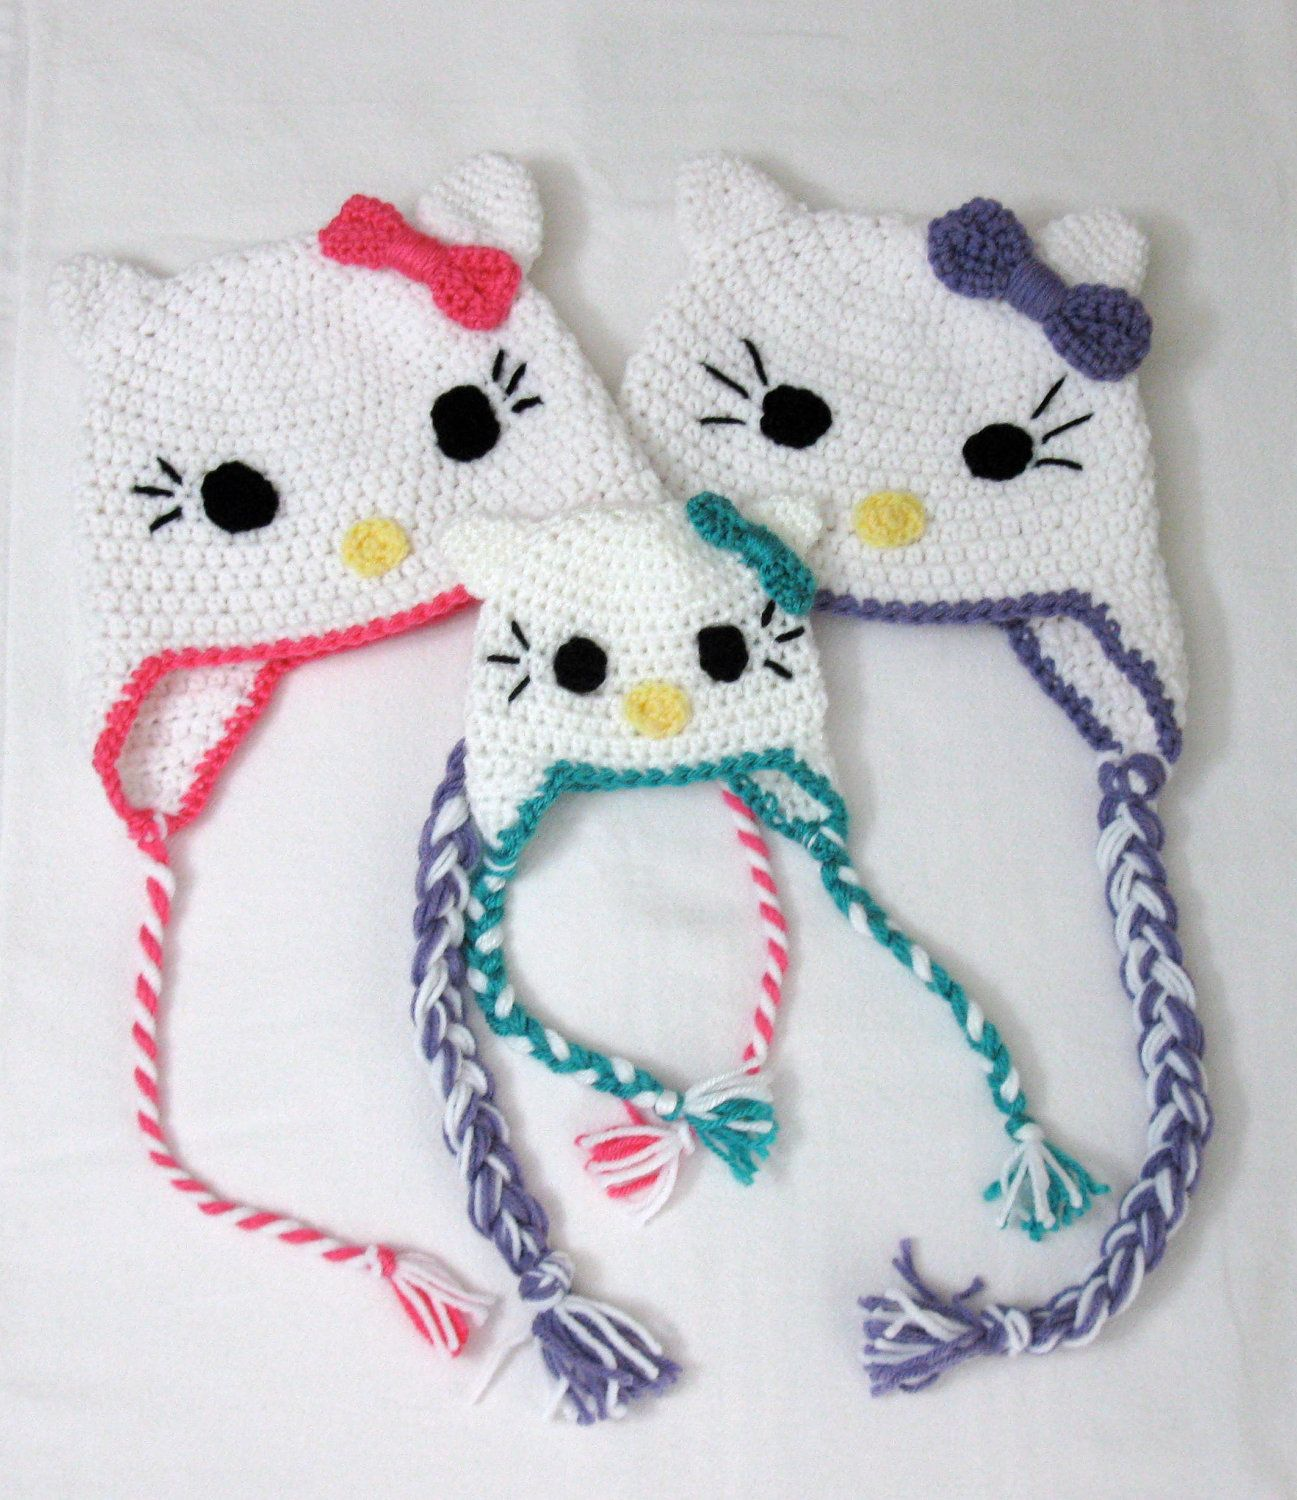 Crochet Hello Kitty Hat! I can't wait to make these ...